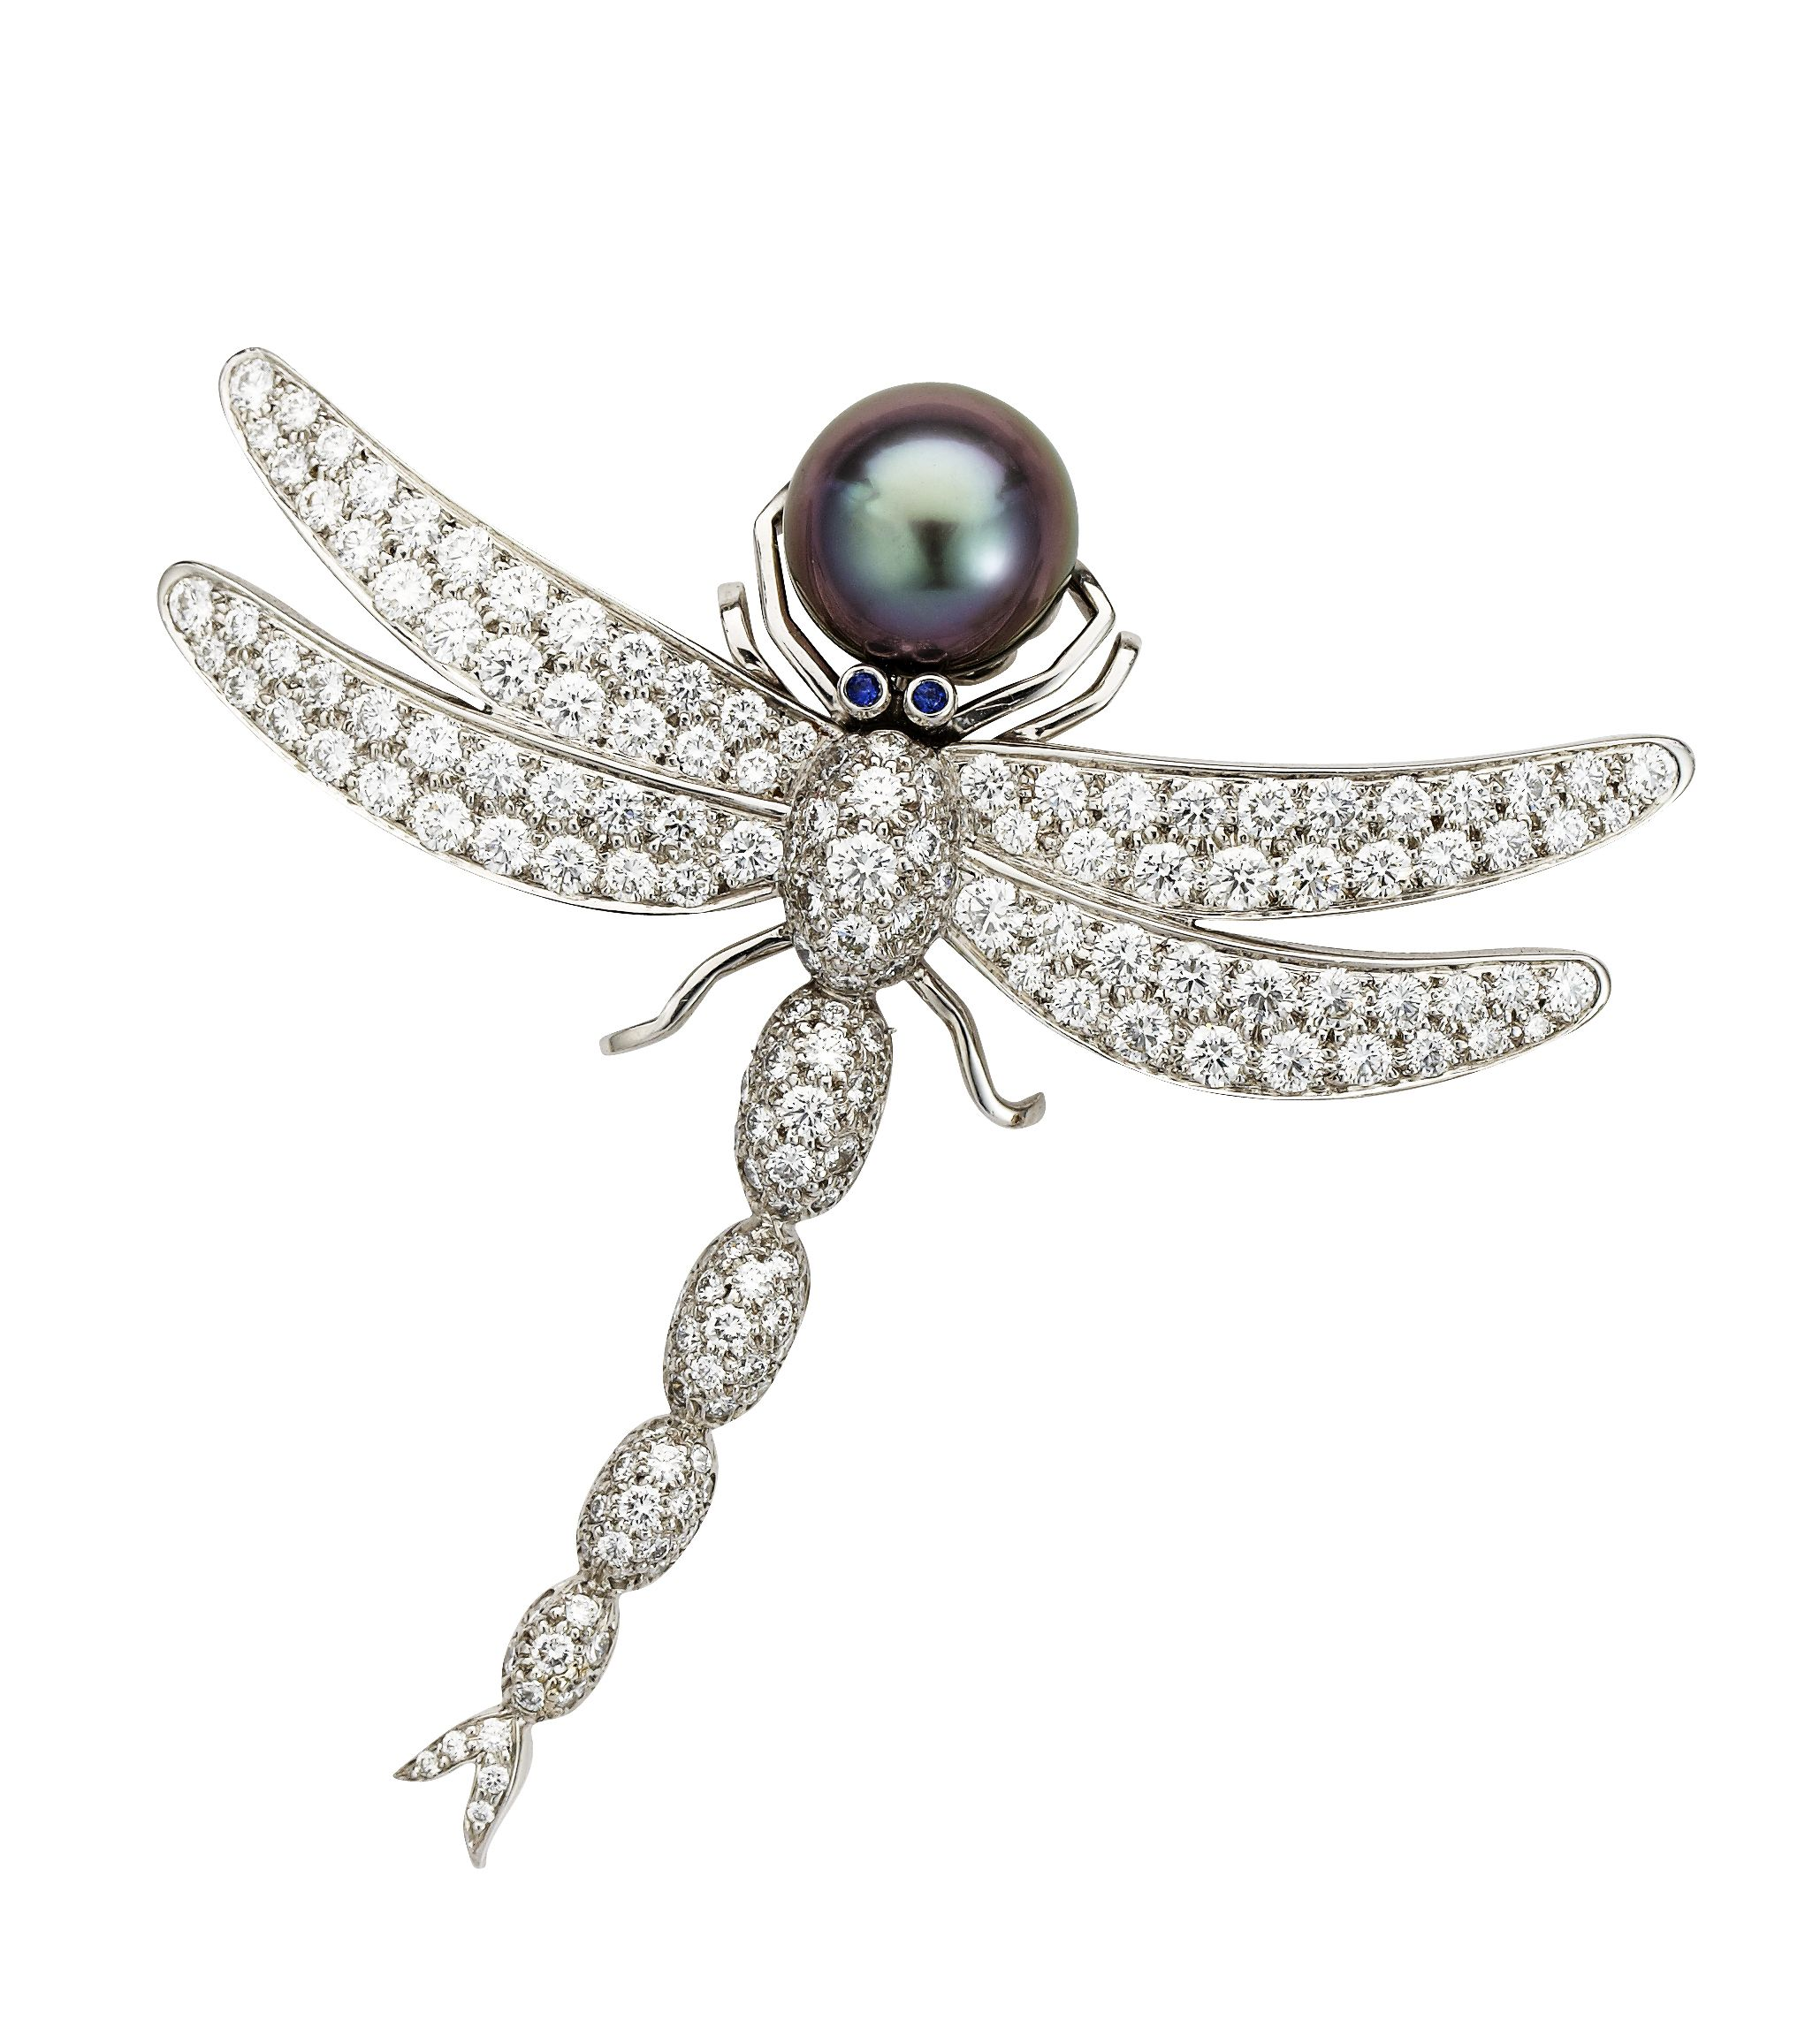 Nigel Milne - Tiffany Diamond and Pearl Dragonfly Brooch - A delightful pave set diamond dragonfly brooch with sapphire eyes and a luxurious 11mm Tahitian pearl captured in its fore legs set in platinum signed by Tiffany & Co, 1986 - available at Nigel Milne.